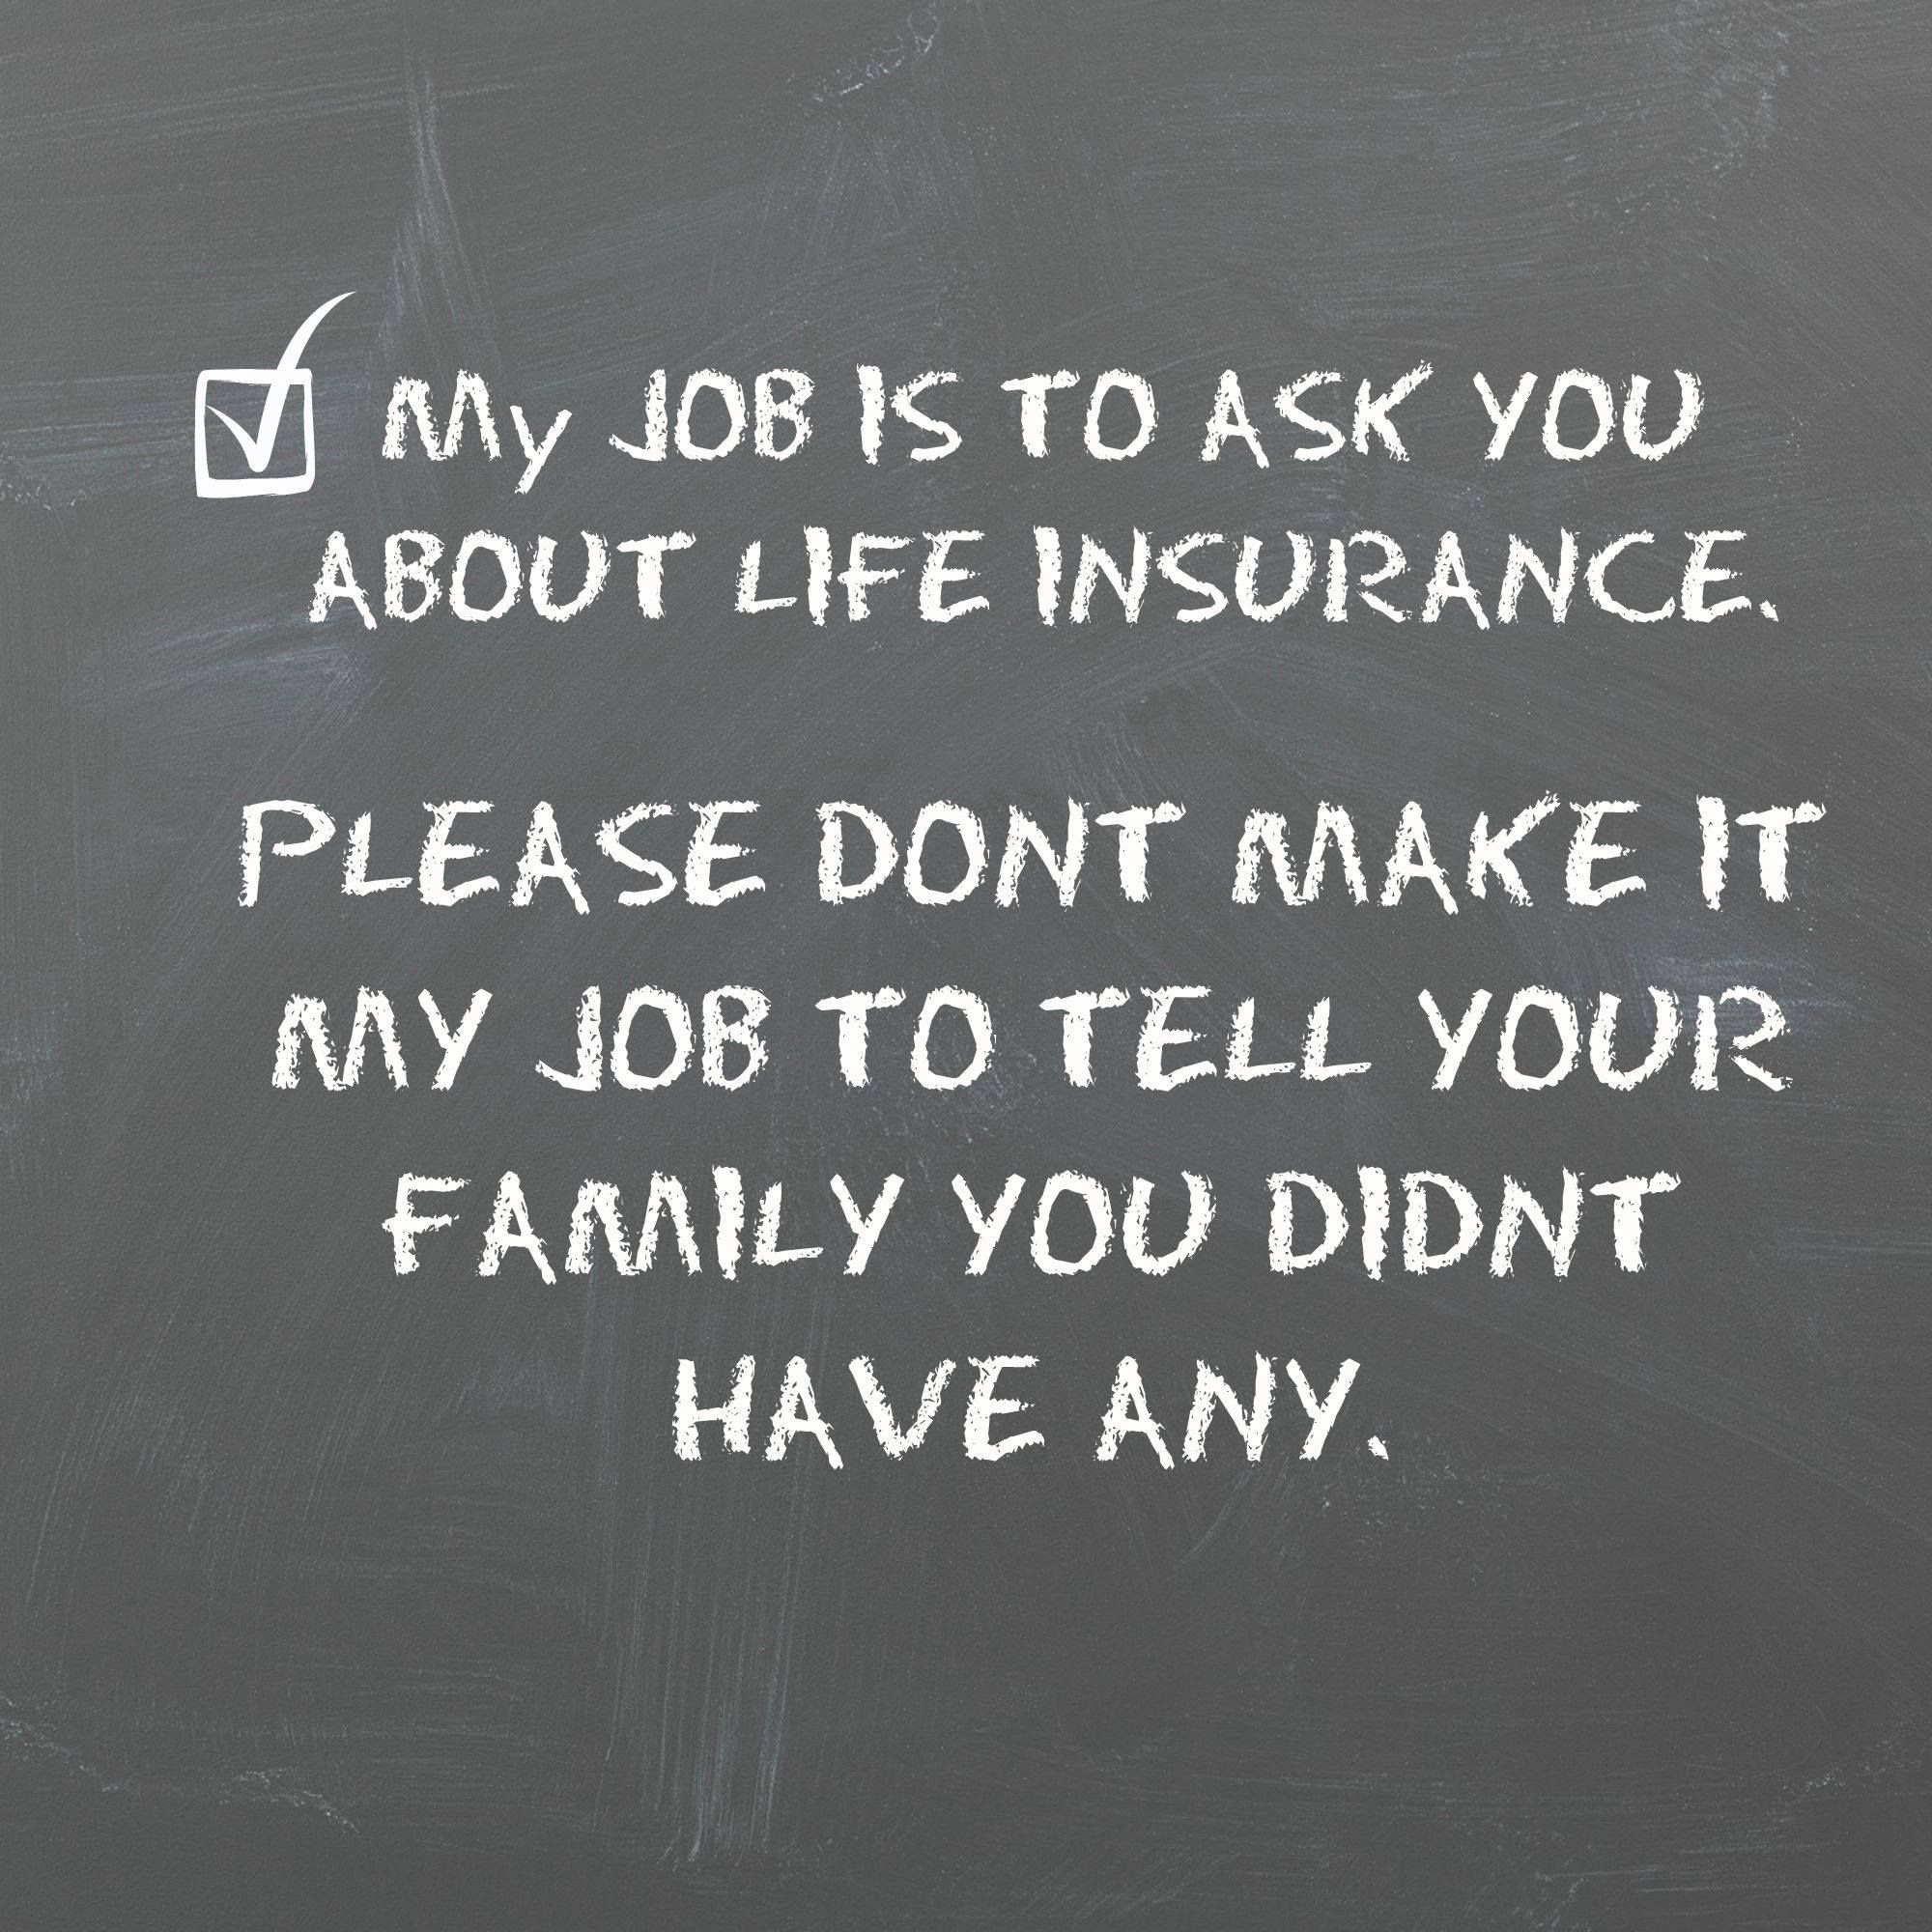 Life Insurance Quote Fascinating Call Us For Any #lifeinsurance Questions That You Have At 330225